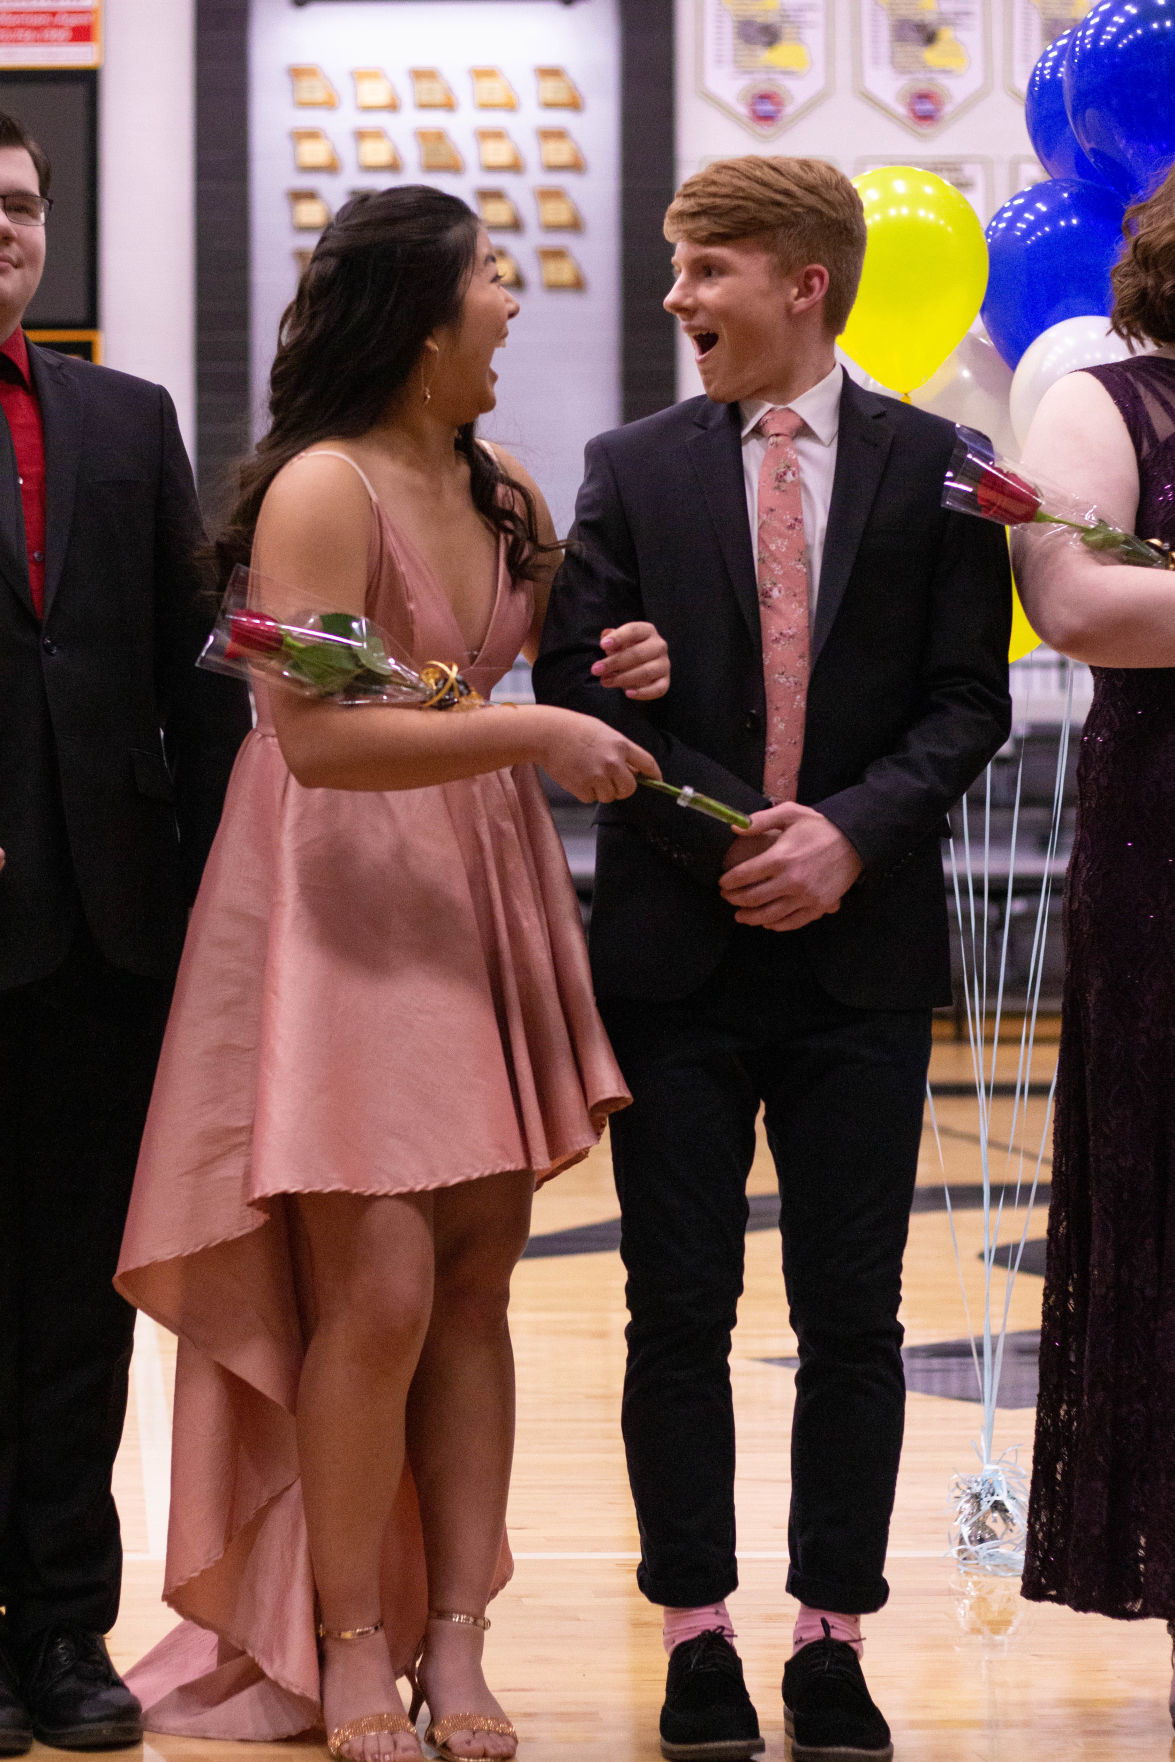 Hansen crowned 2019 FHS Sweetheart Queen